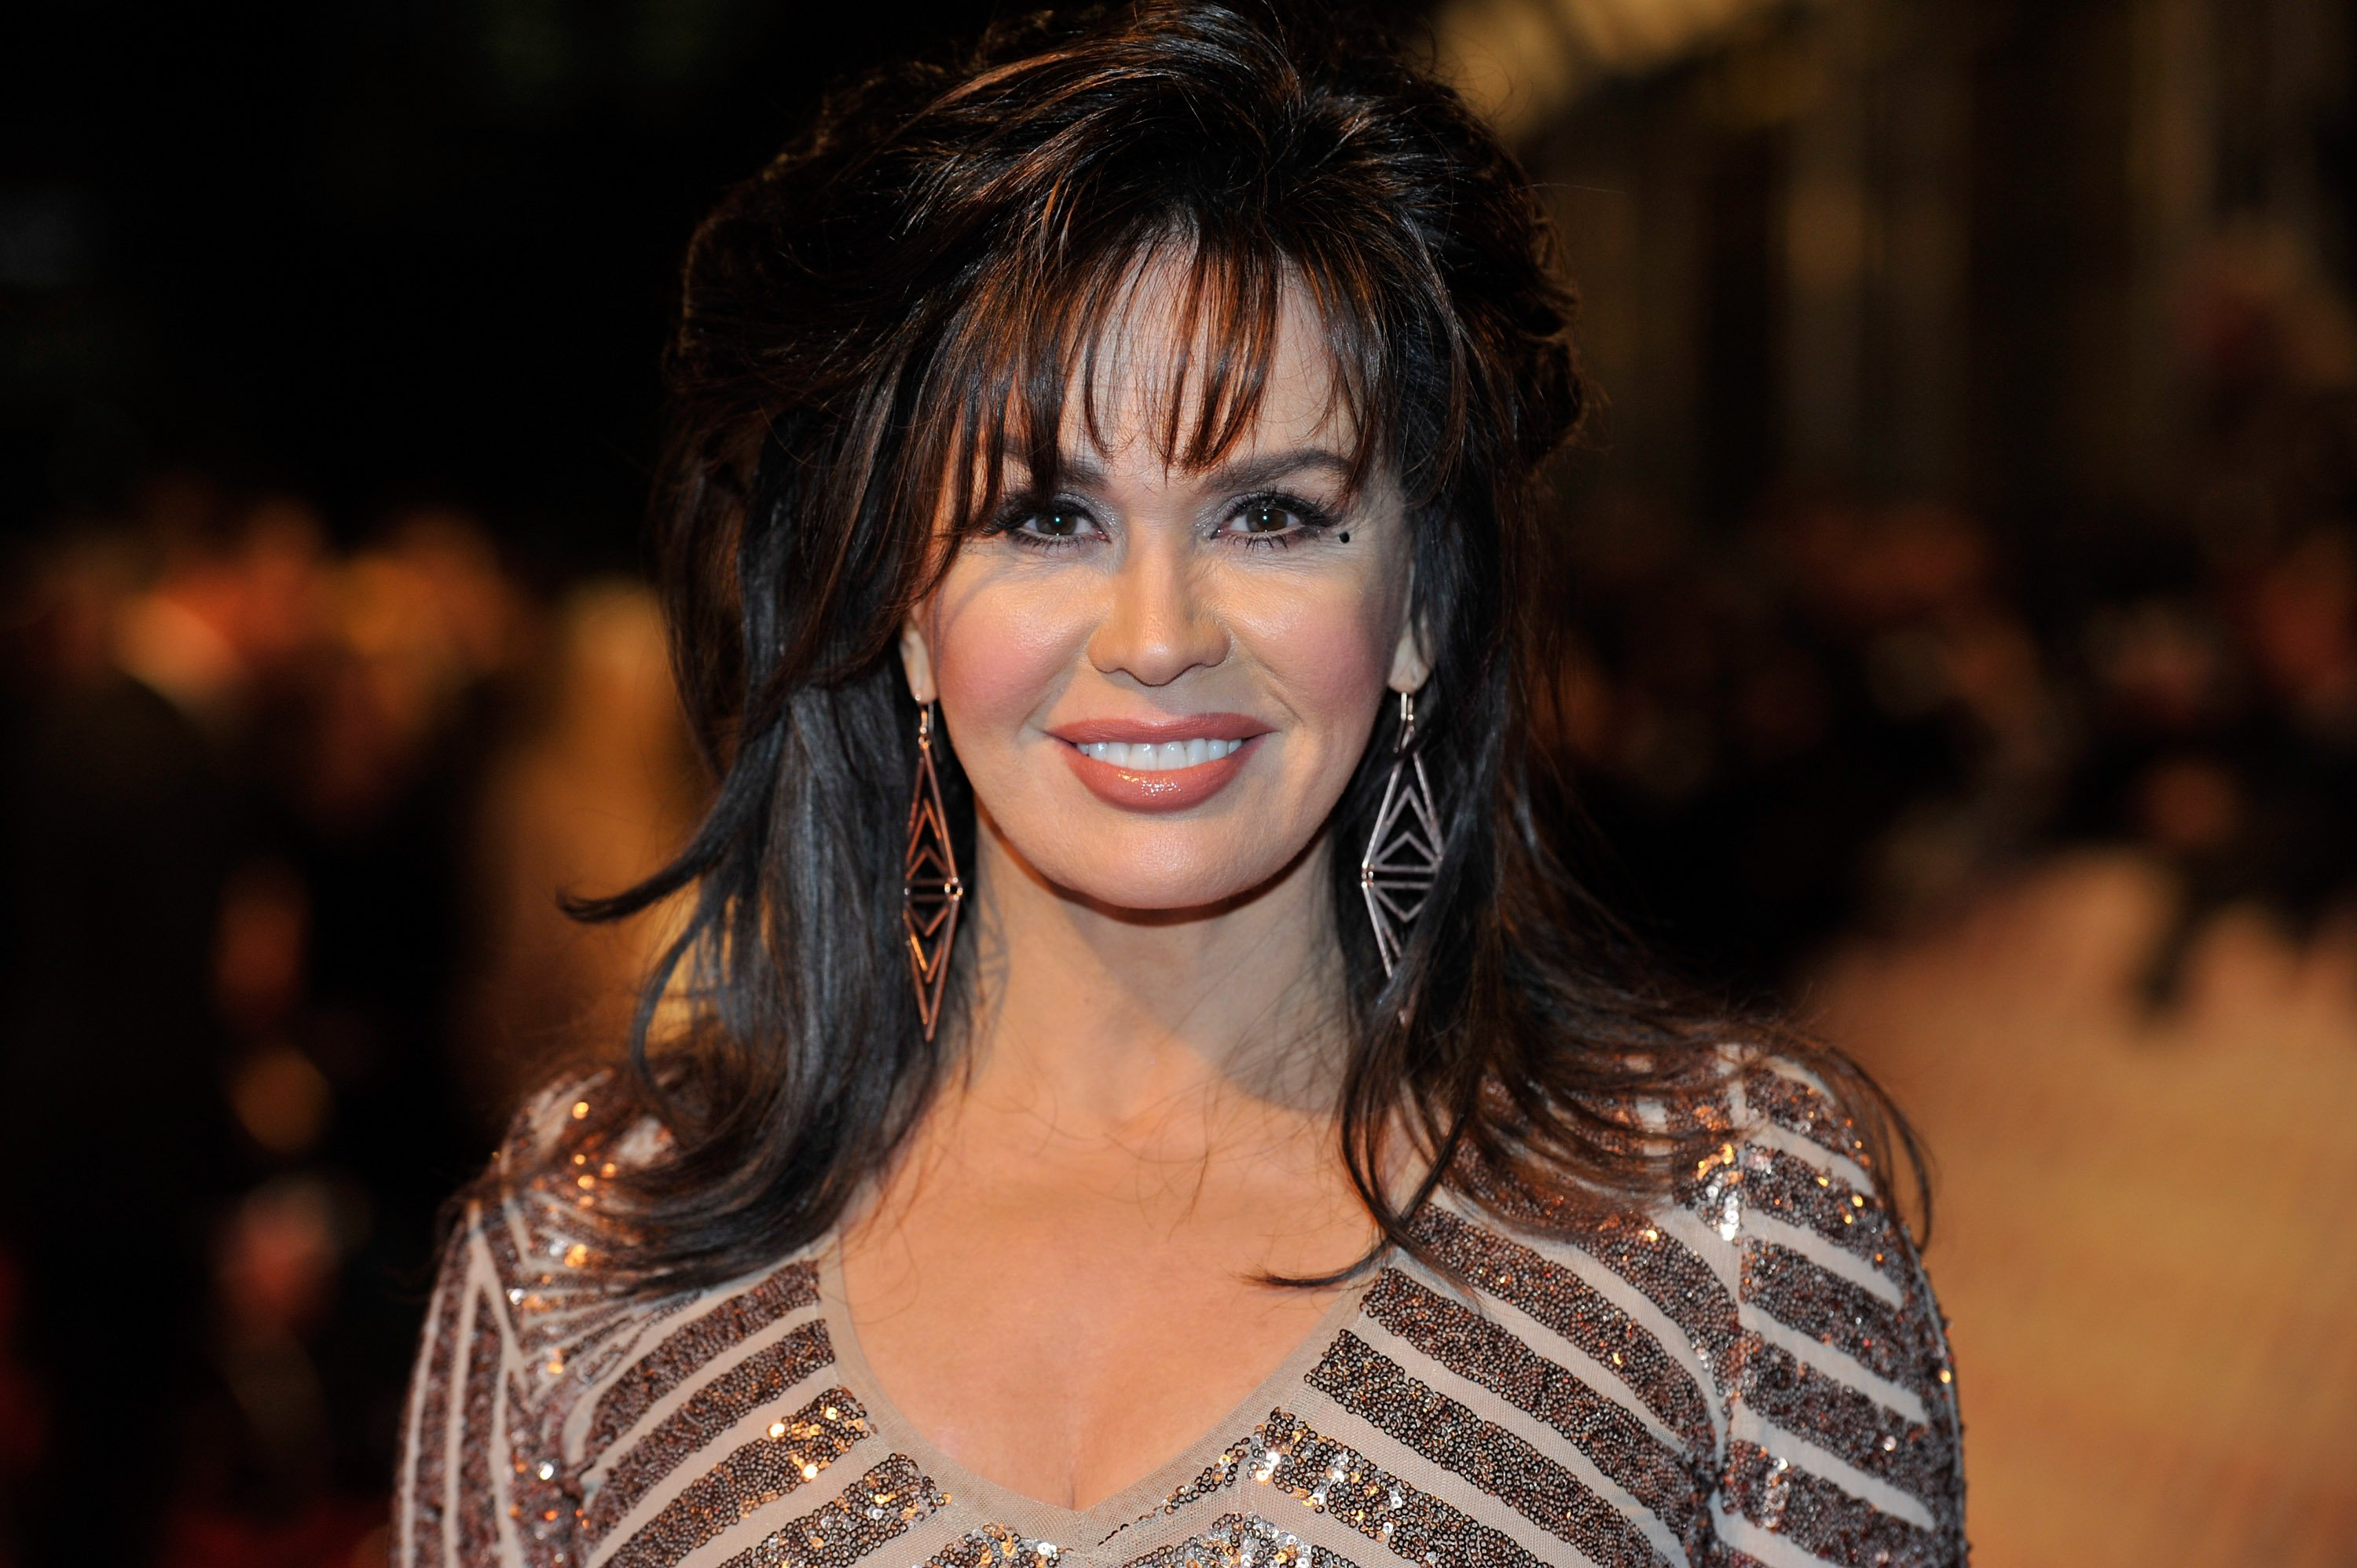 Singer Marie Osmond during a 2013 awarding ceremony in London. | Photo: Getty Images